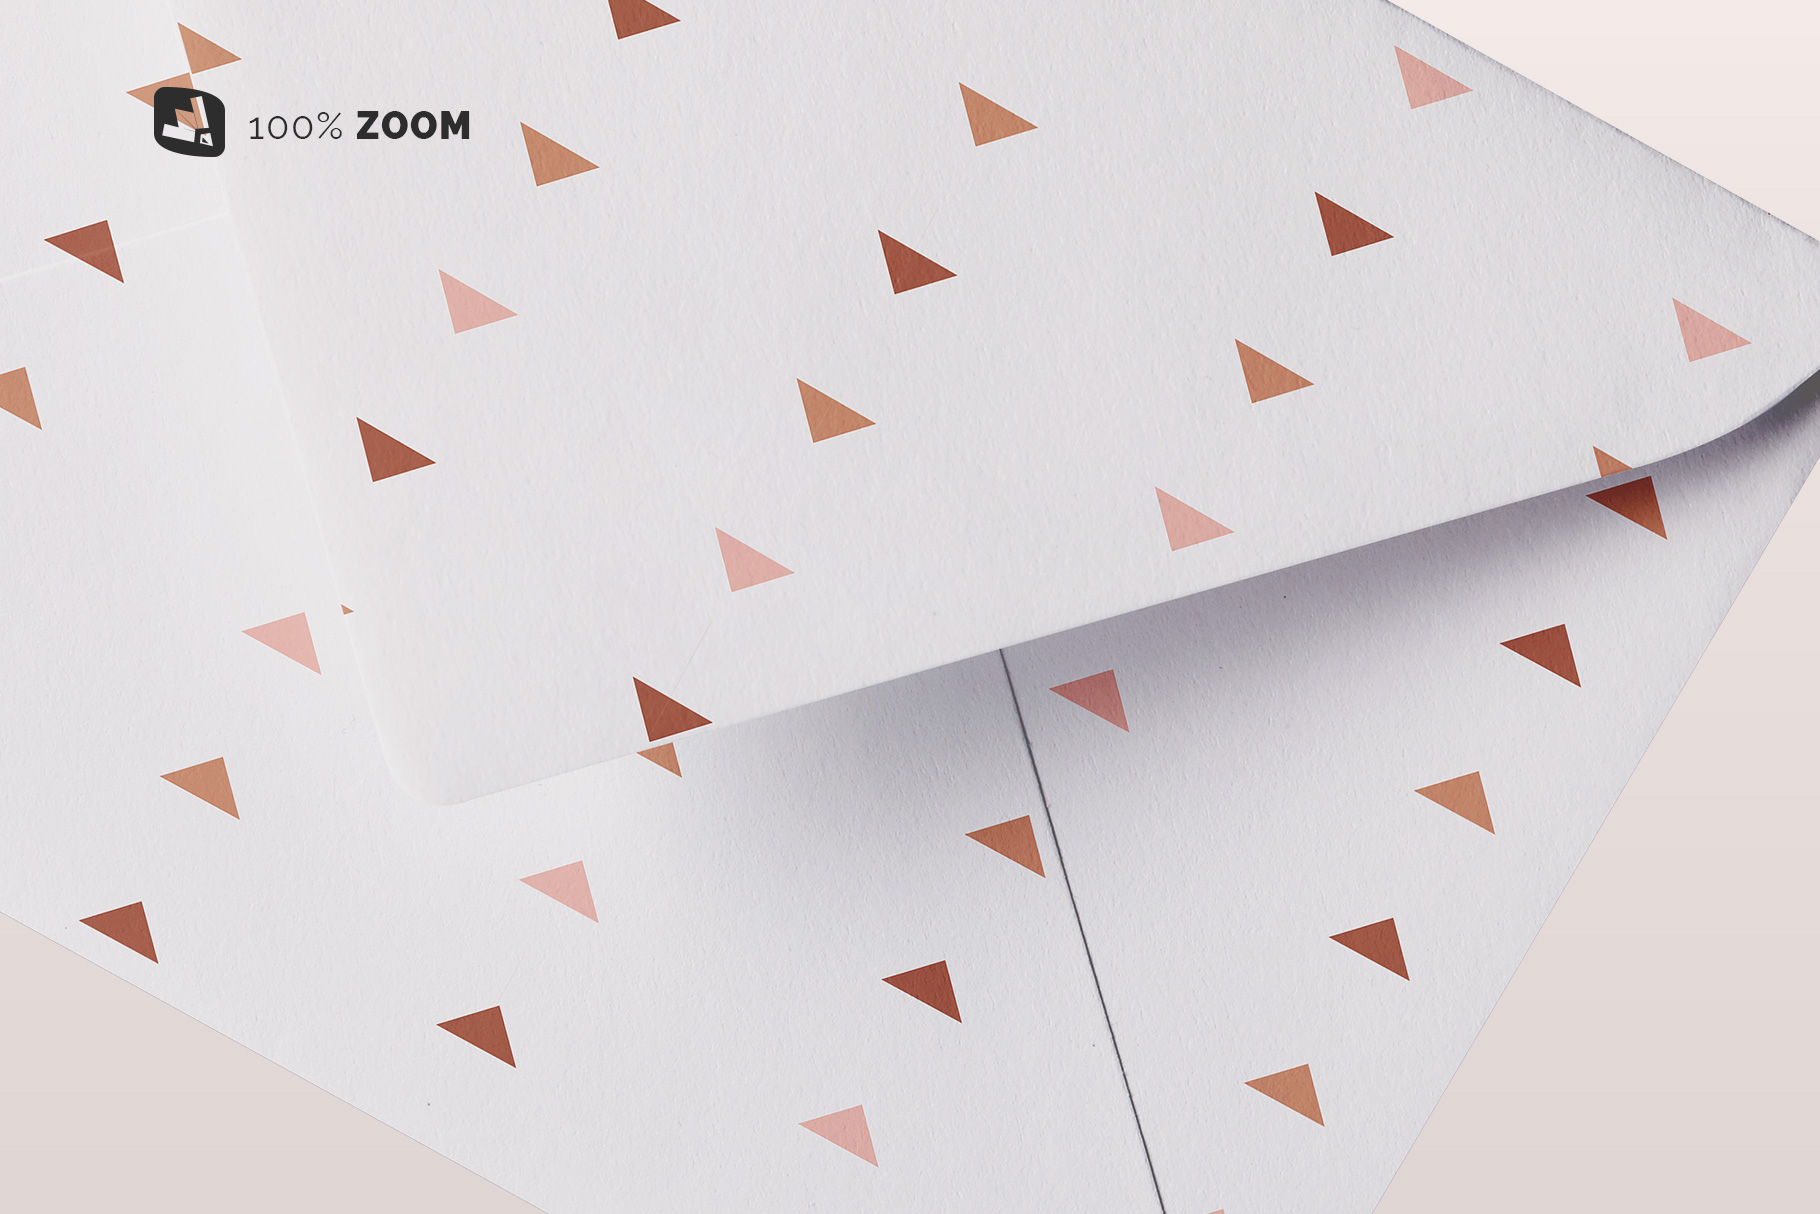 zoomed in image of the rectangular letter envelope mockup